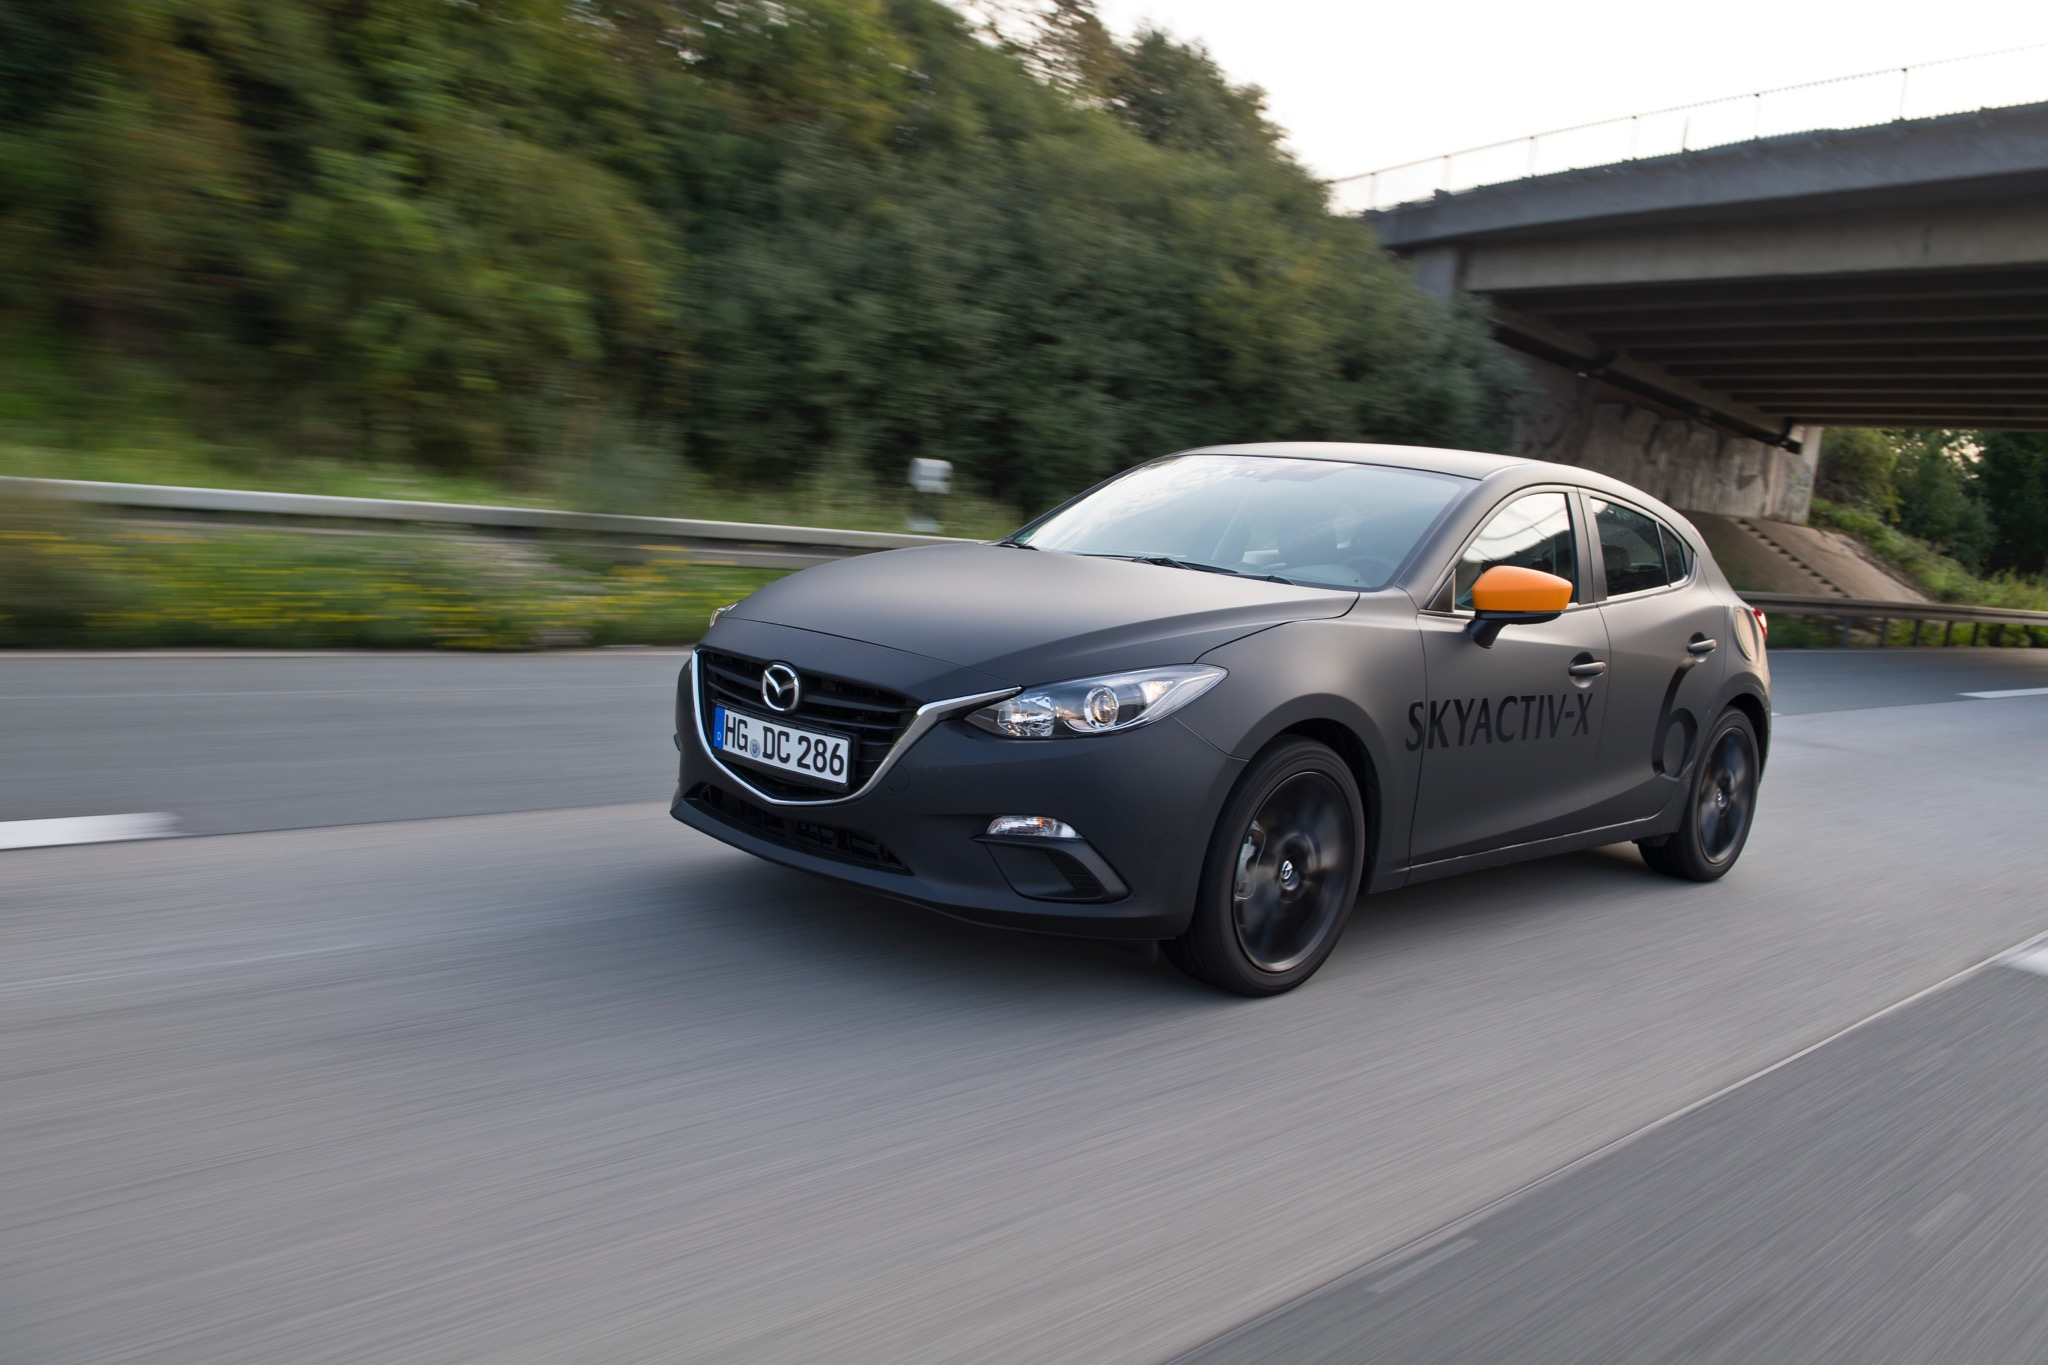 Mazda Skyactiv X Review Photos 1 Of 33